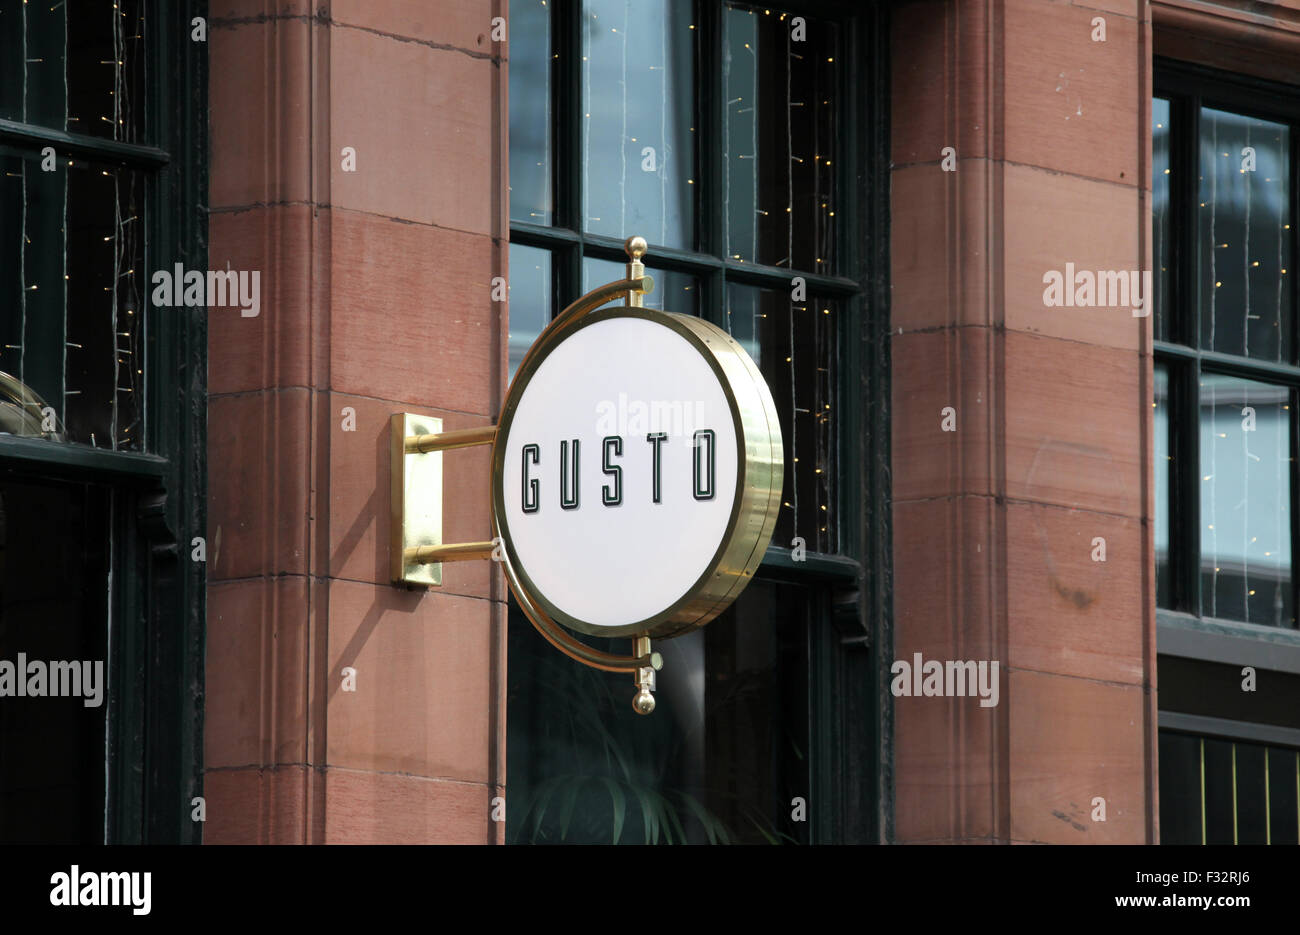 GUSTO Restaurant Sign in Manchester - Stock Image